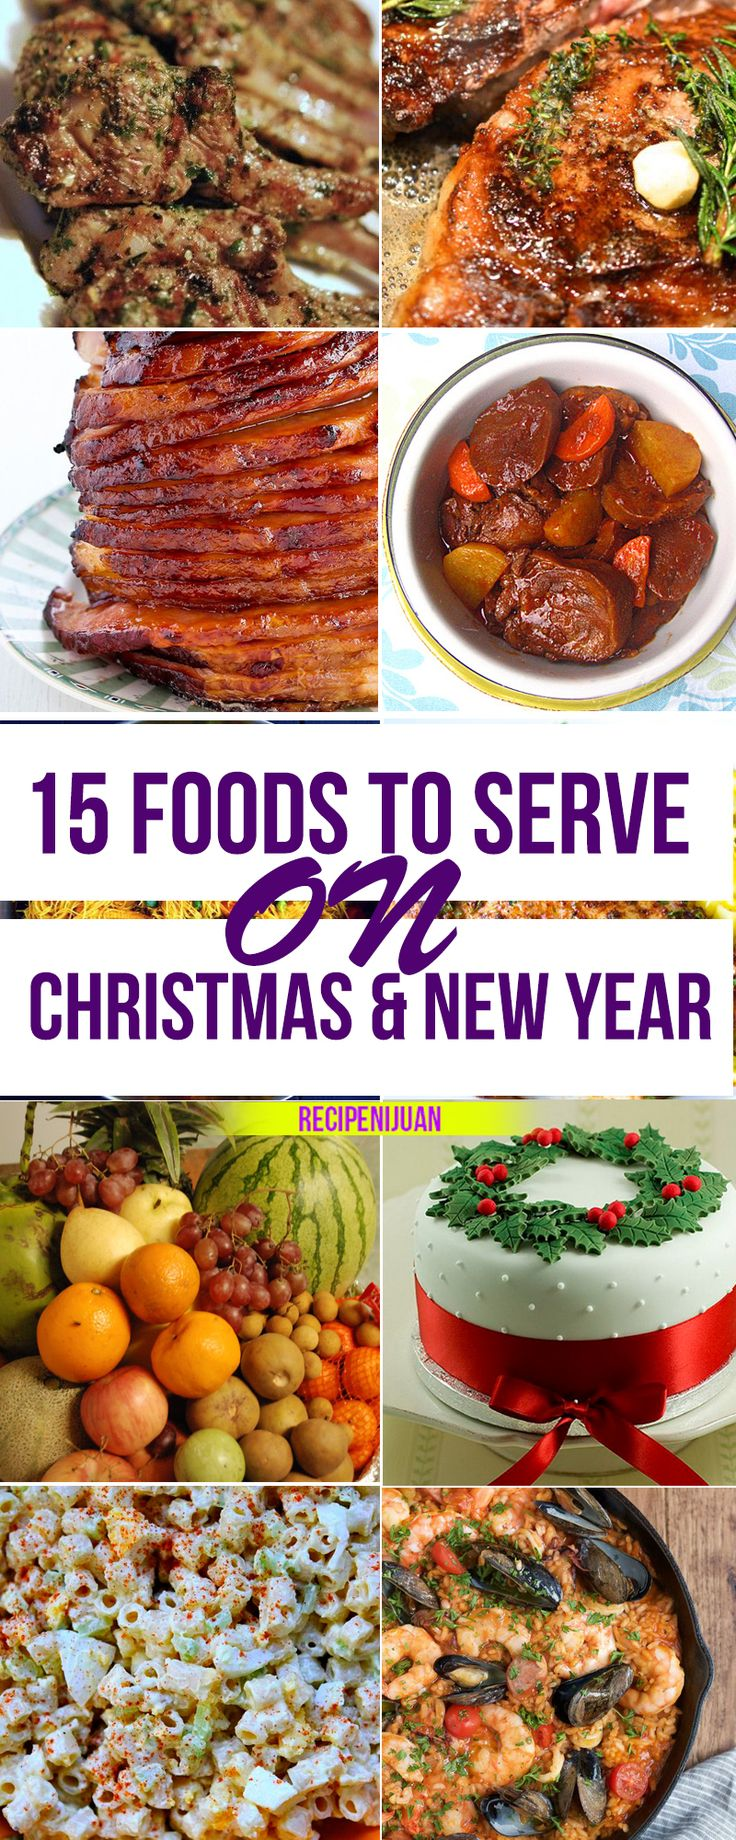 374 best traditional filipino foodchristmas dishes for noche top 15 filipino recipes for holidays christmas foodsholiday forumfinder Choice Image